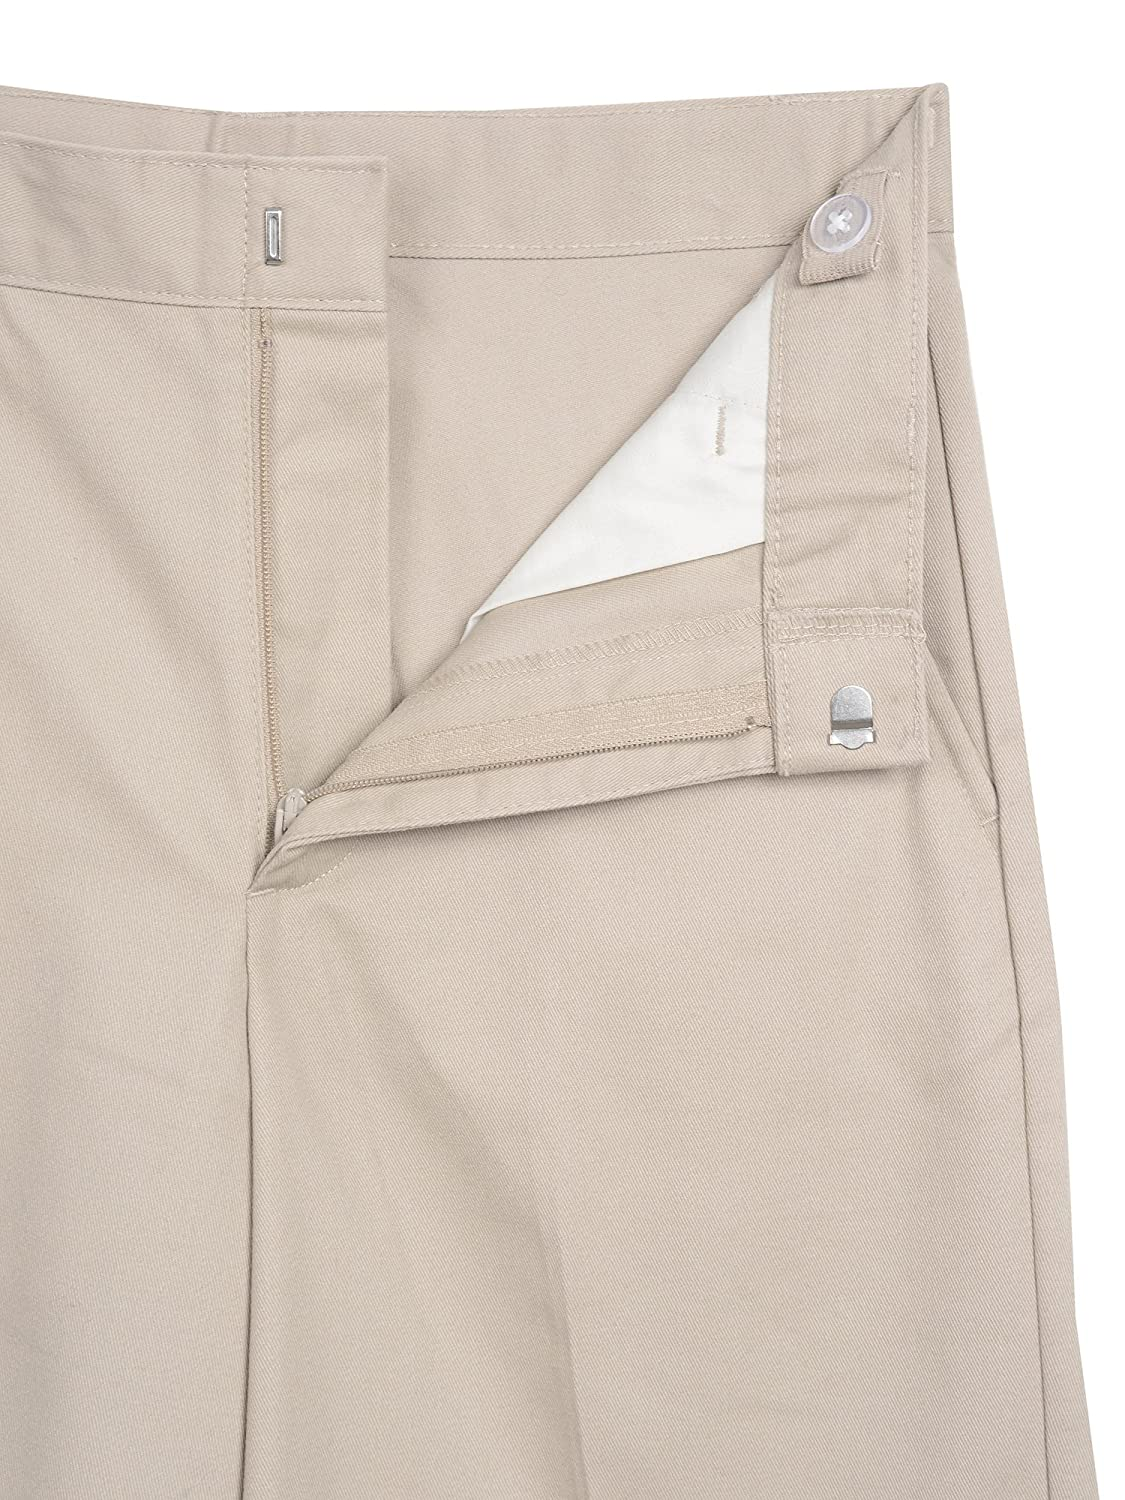 George Boys Flat Front Twill Pant With Scotchguard